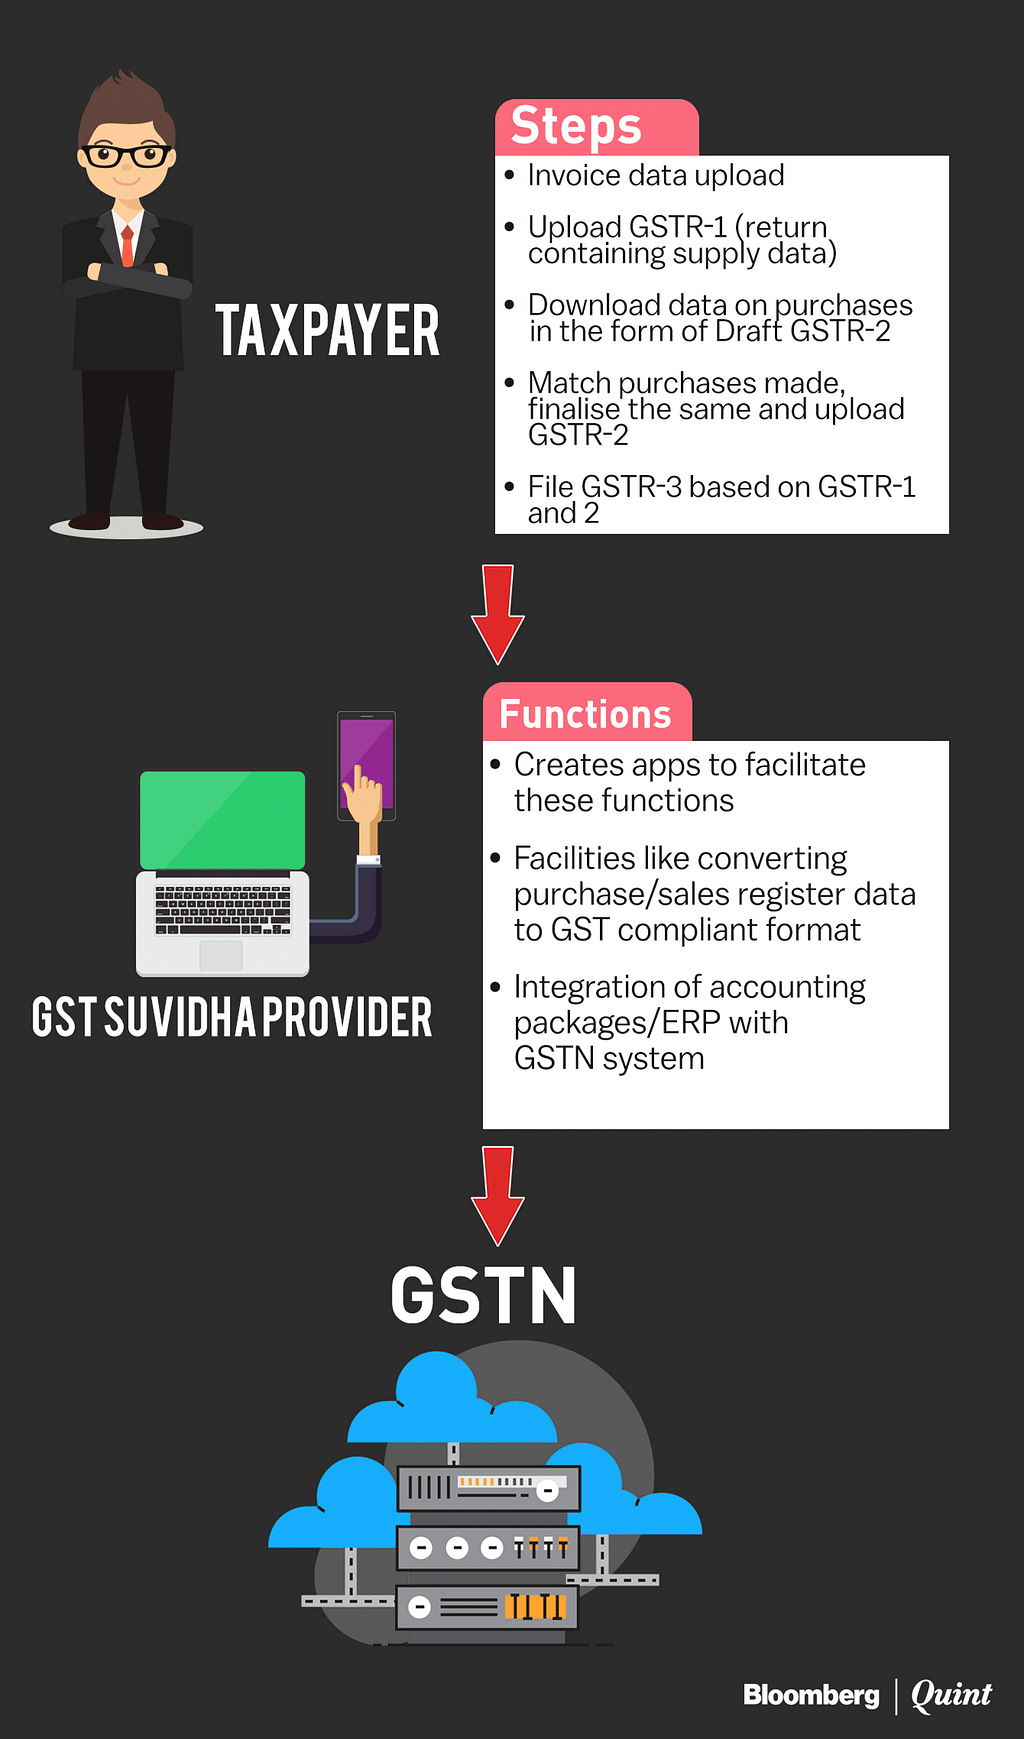 Pending Enrollments, 58k Taxmen to be Trained Before GSTN Launch